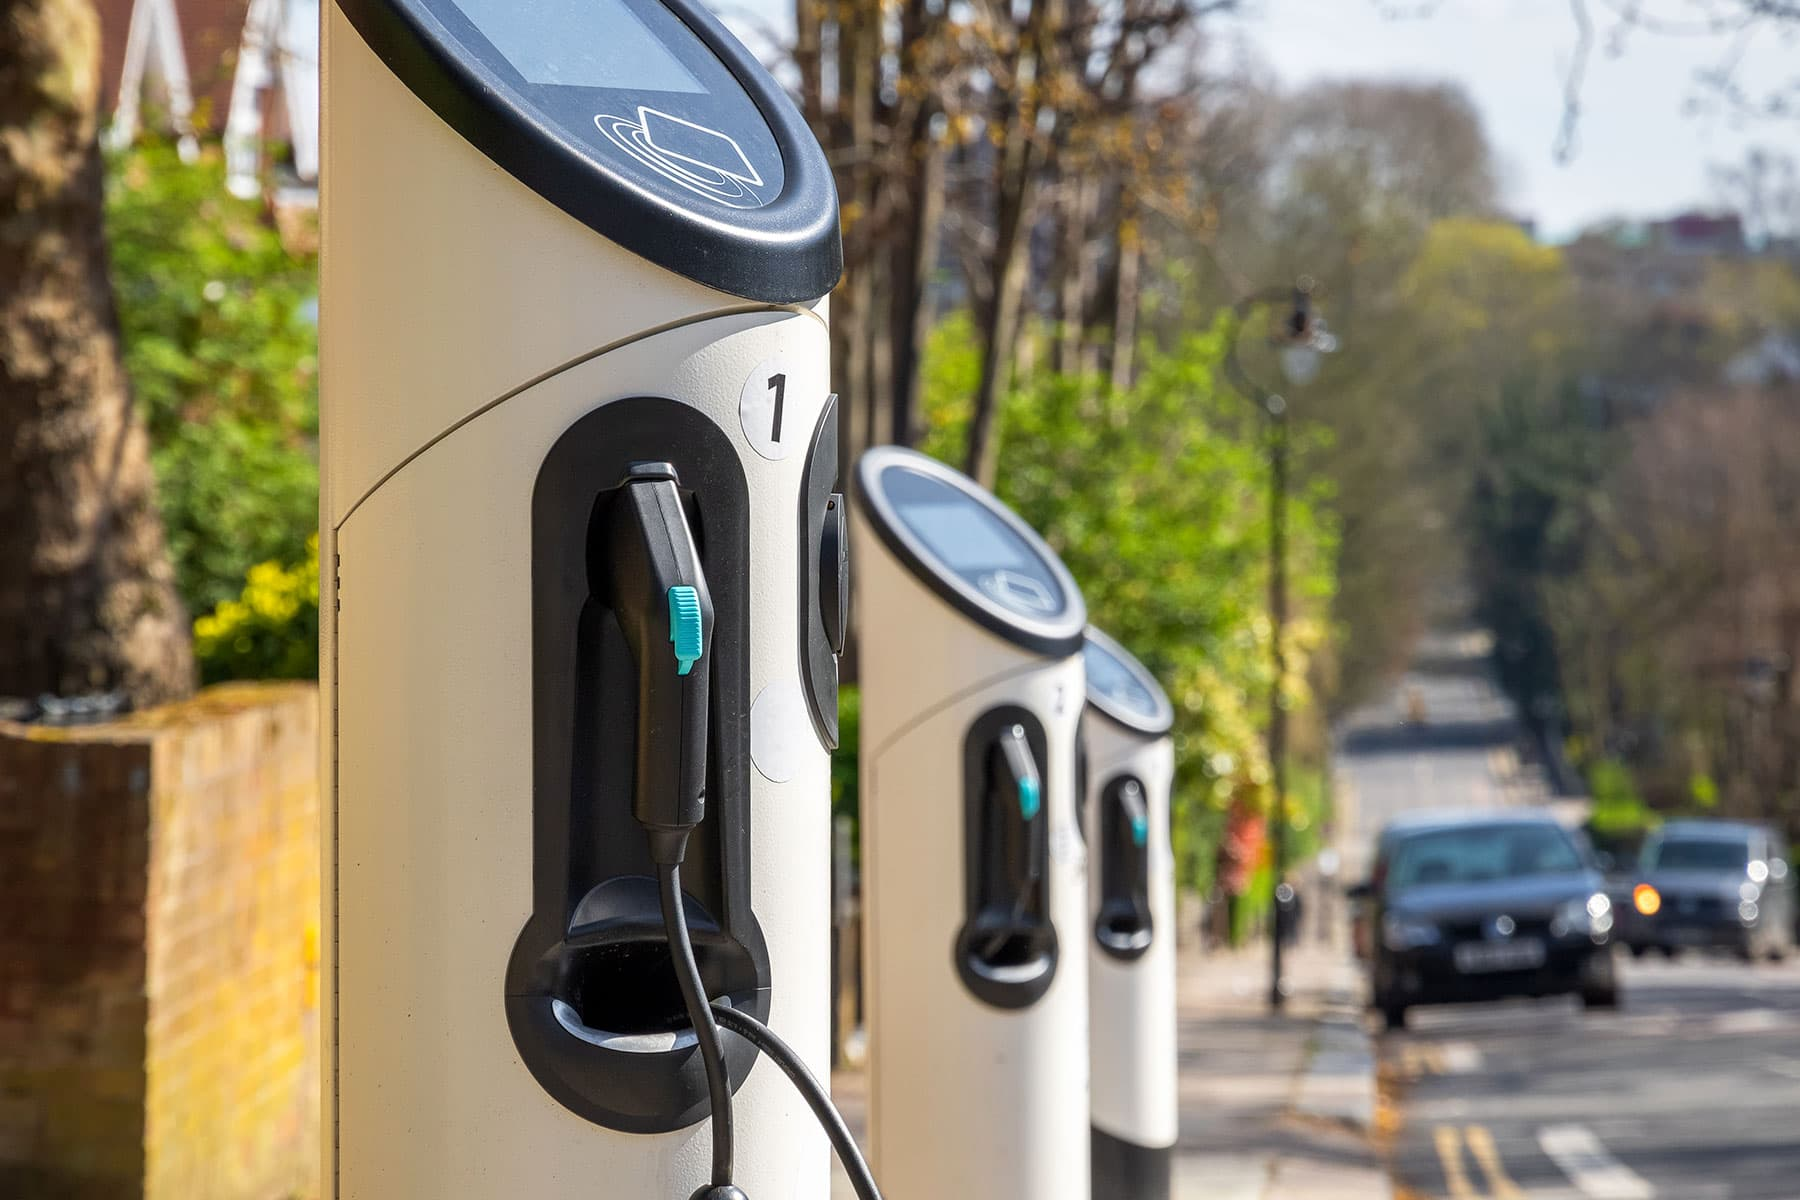 A row of EV chargers on the street